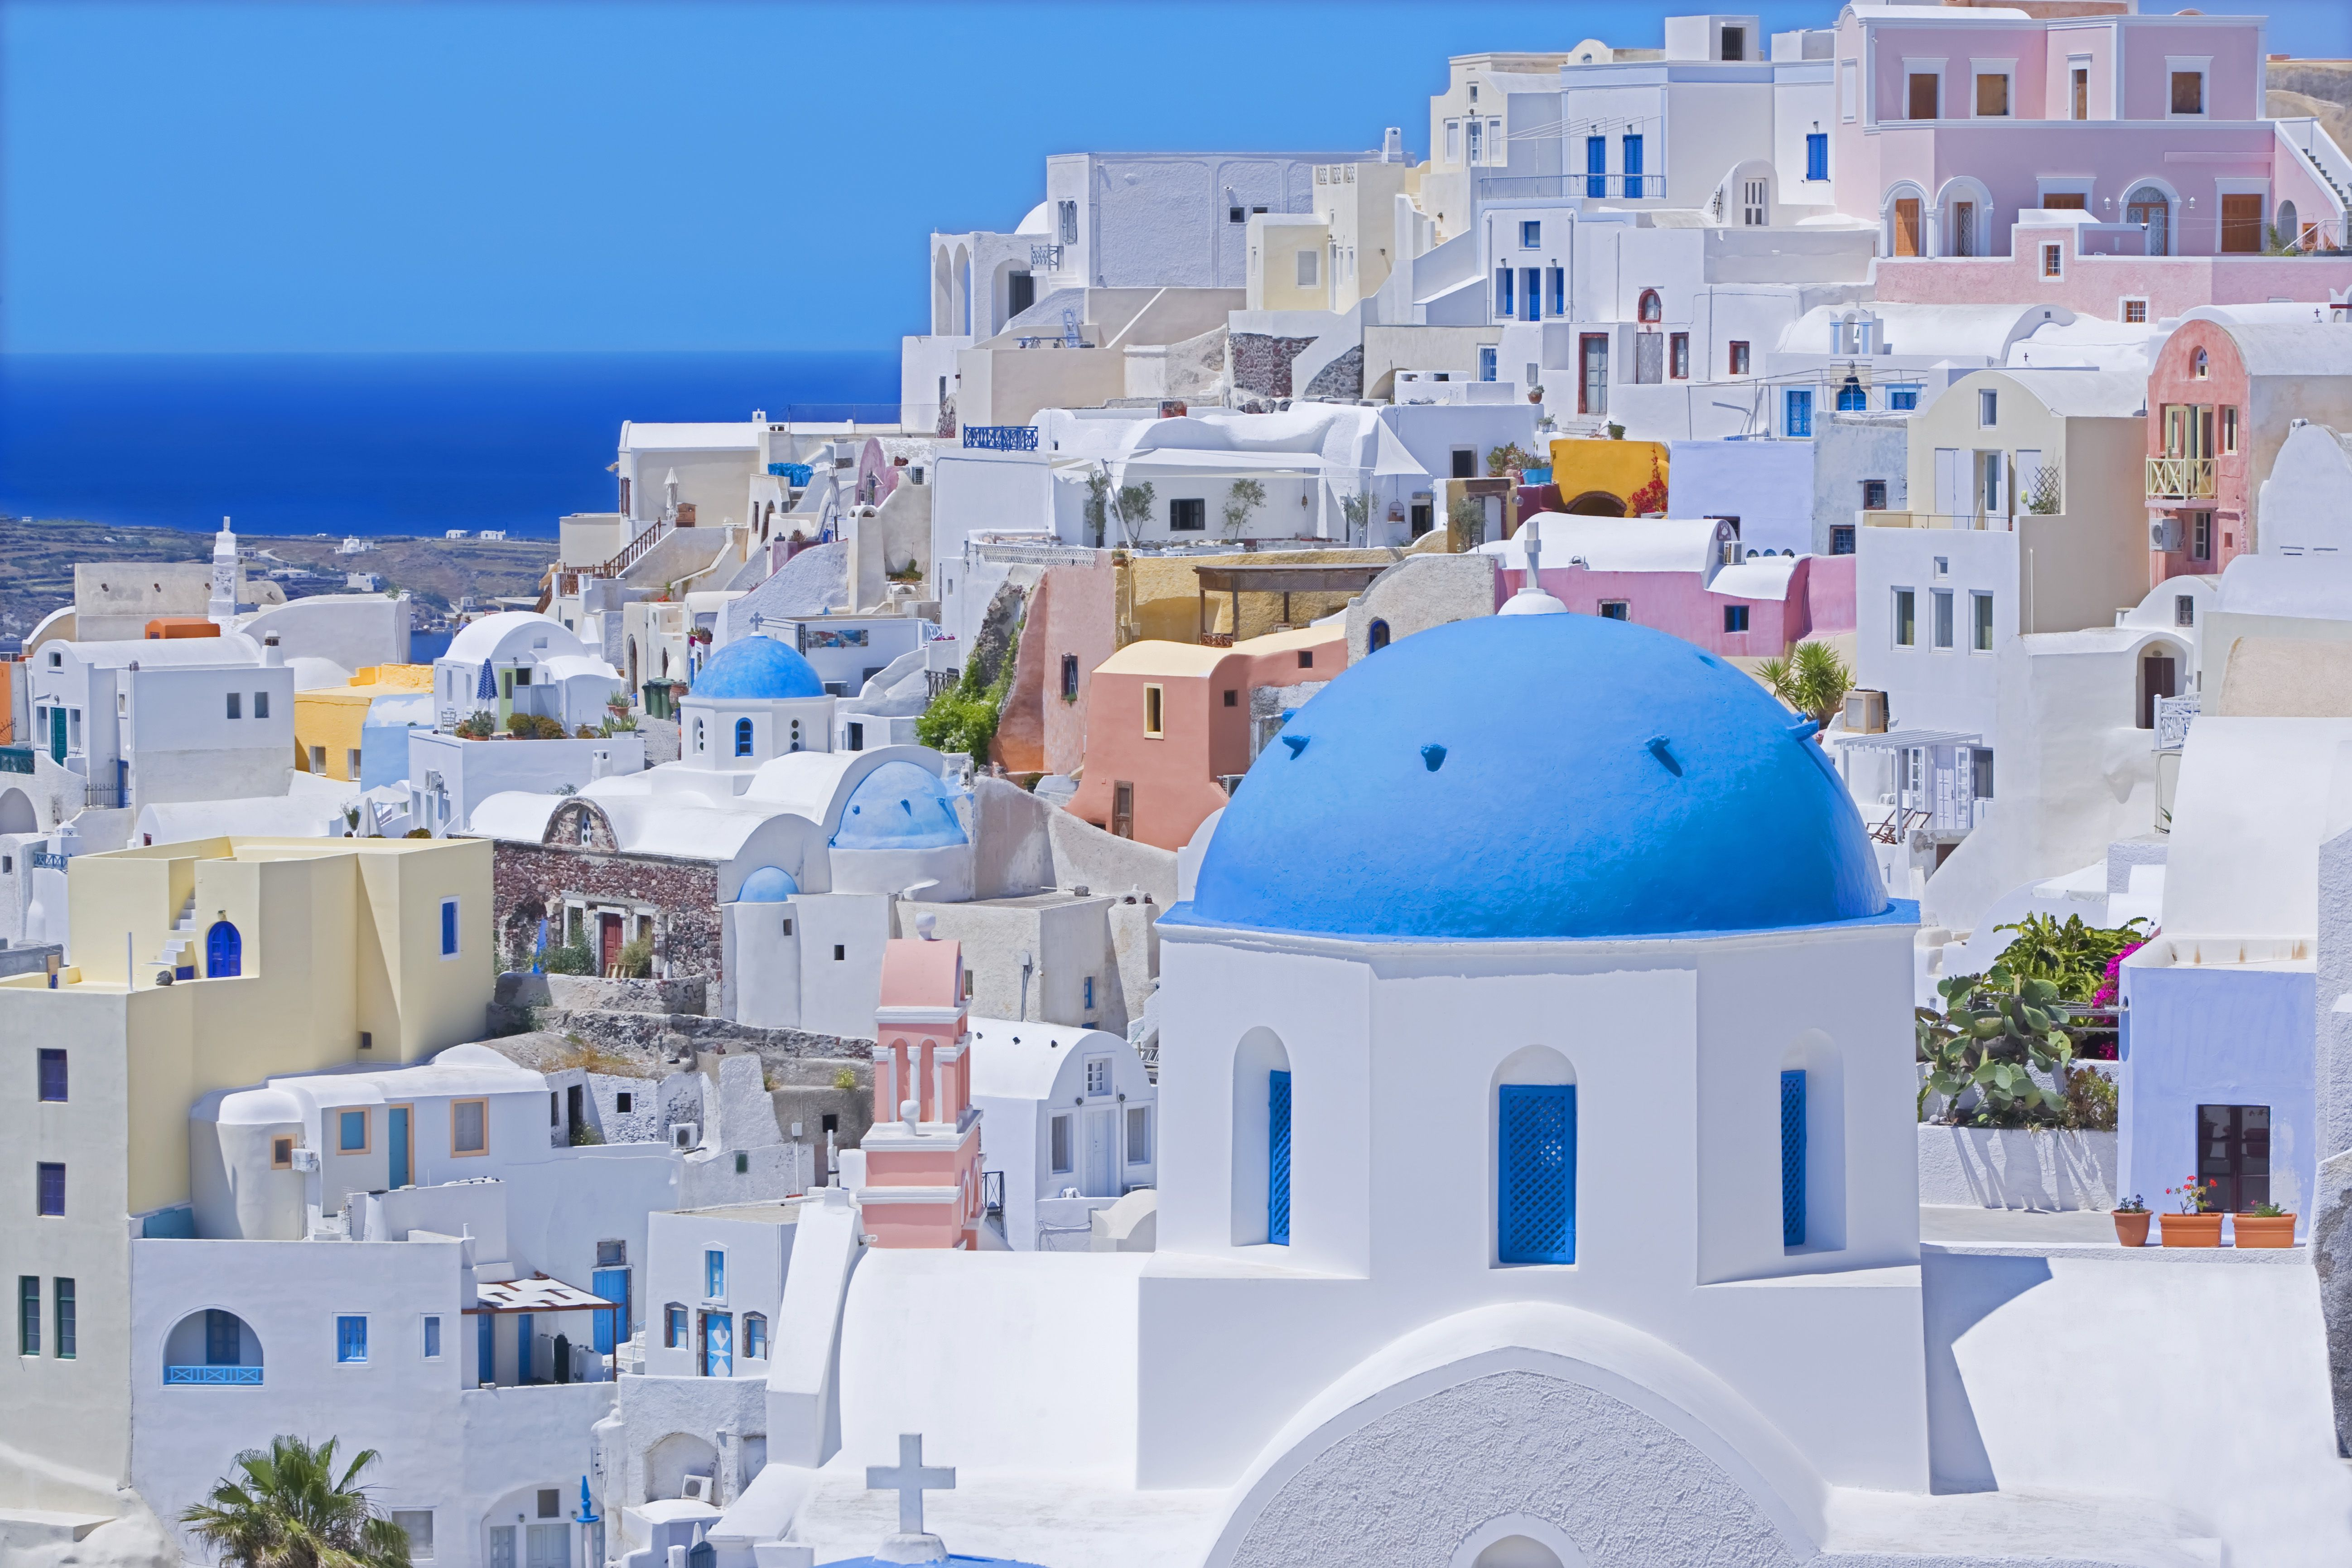 A Complete Guide to the Towns of Santorini